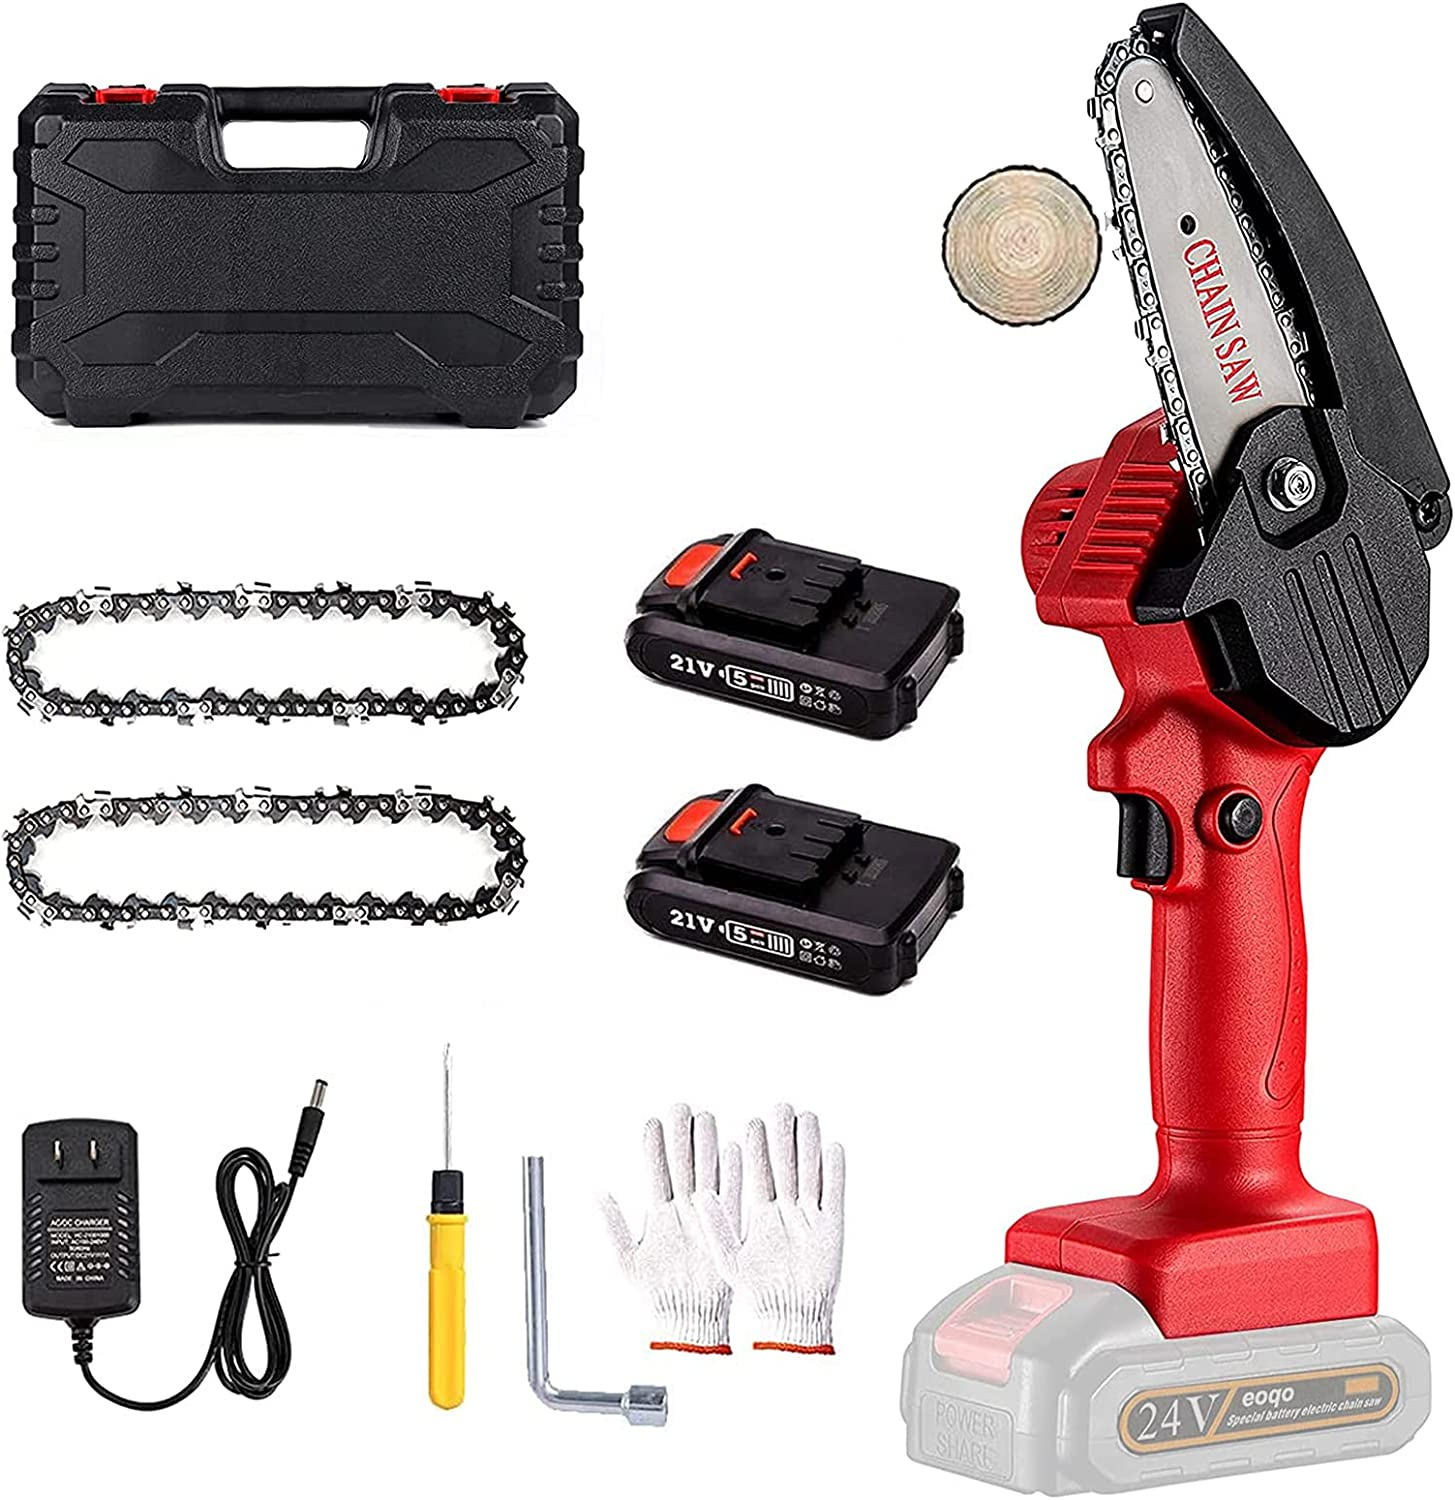 Don't miss the campaign Mini Chainsaw Set Limited time trial price 4 inch Samll L Powered Bttery Cordless Eletric